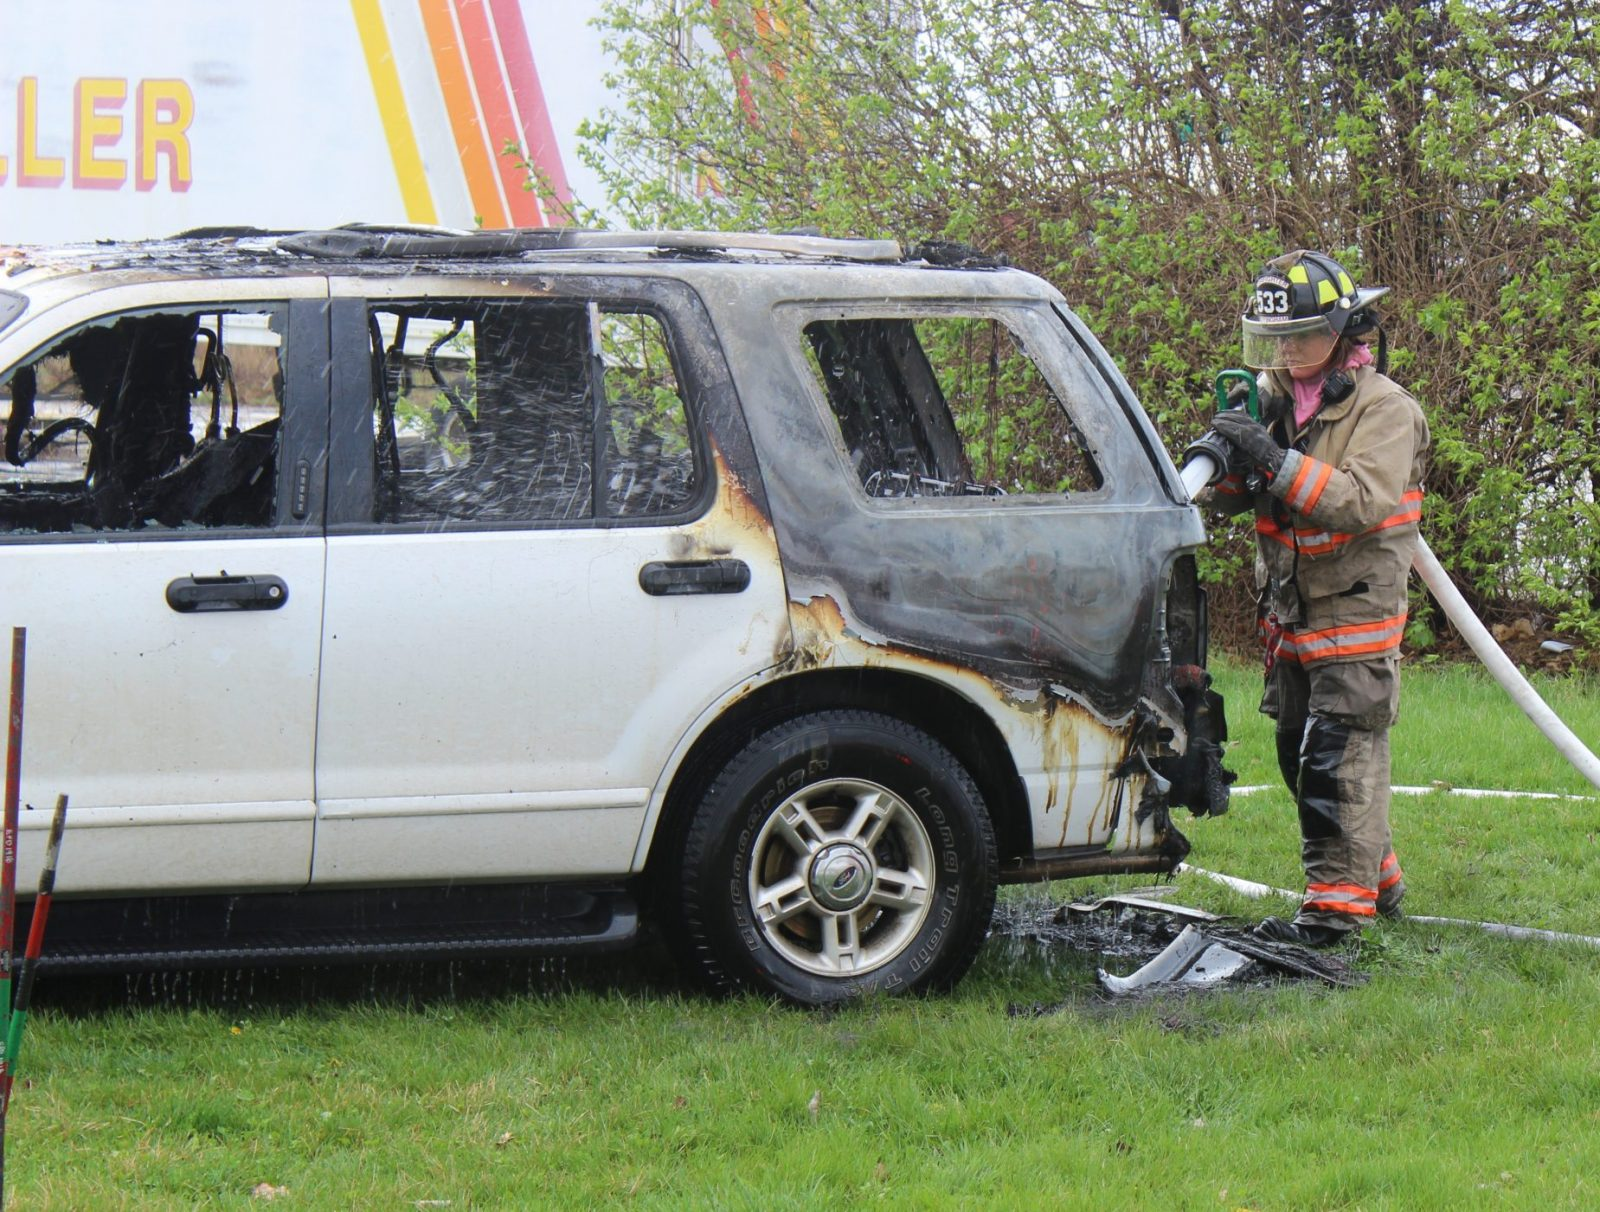 An Effingham Fire Fighter extinguishes the rear-interior of a Ford Explorer that was on fire earlier.